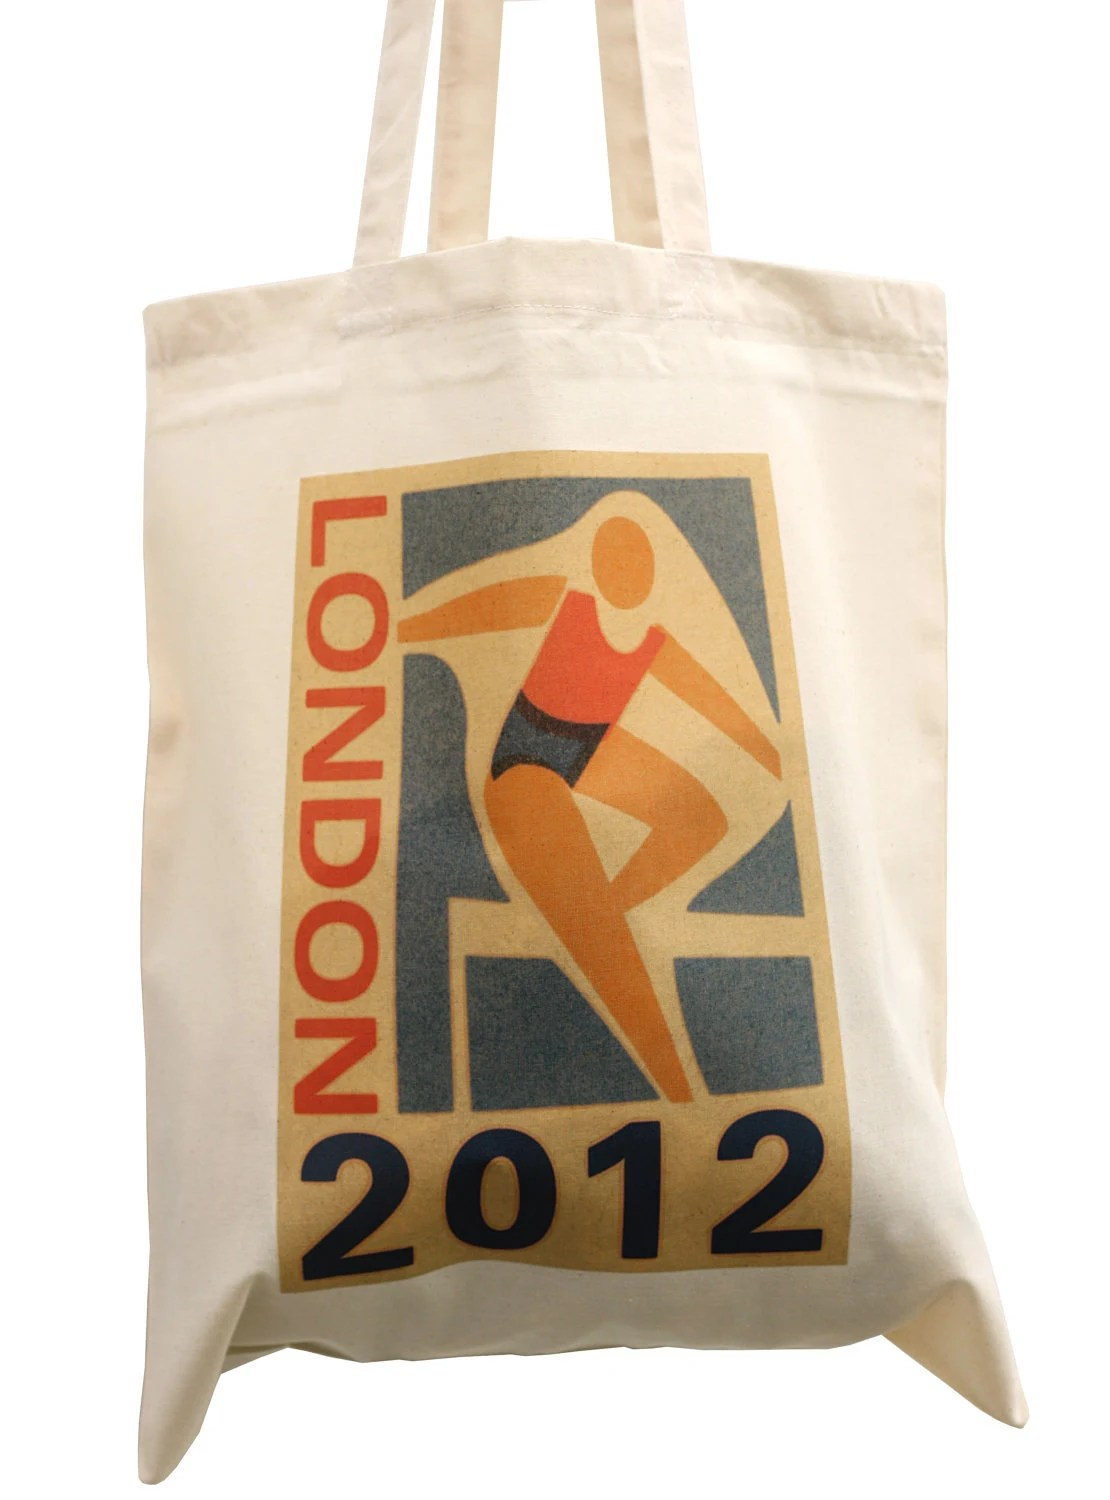 London 2012 cotton tote bag, hurdles athlete